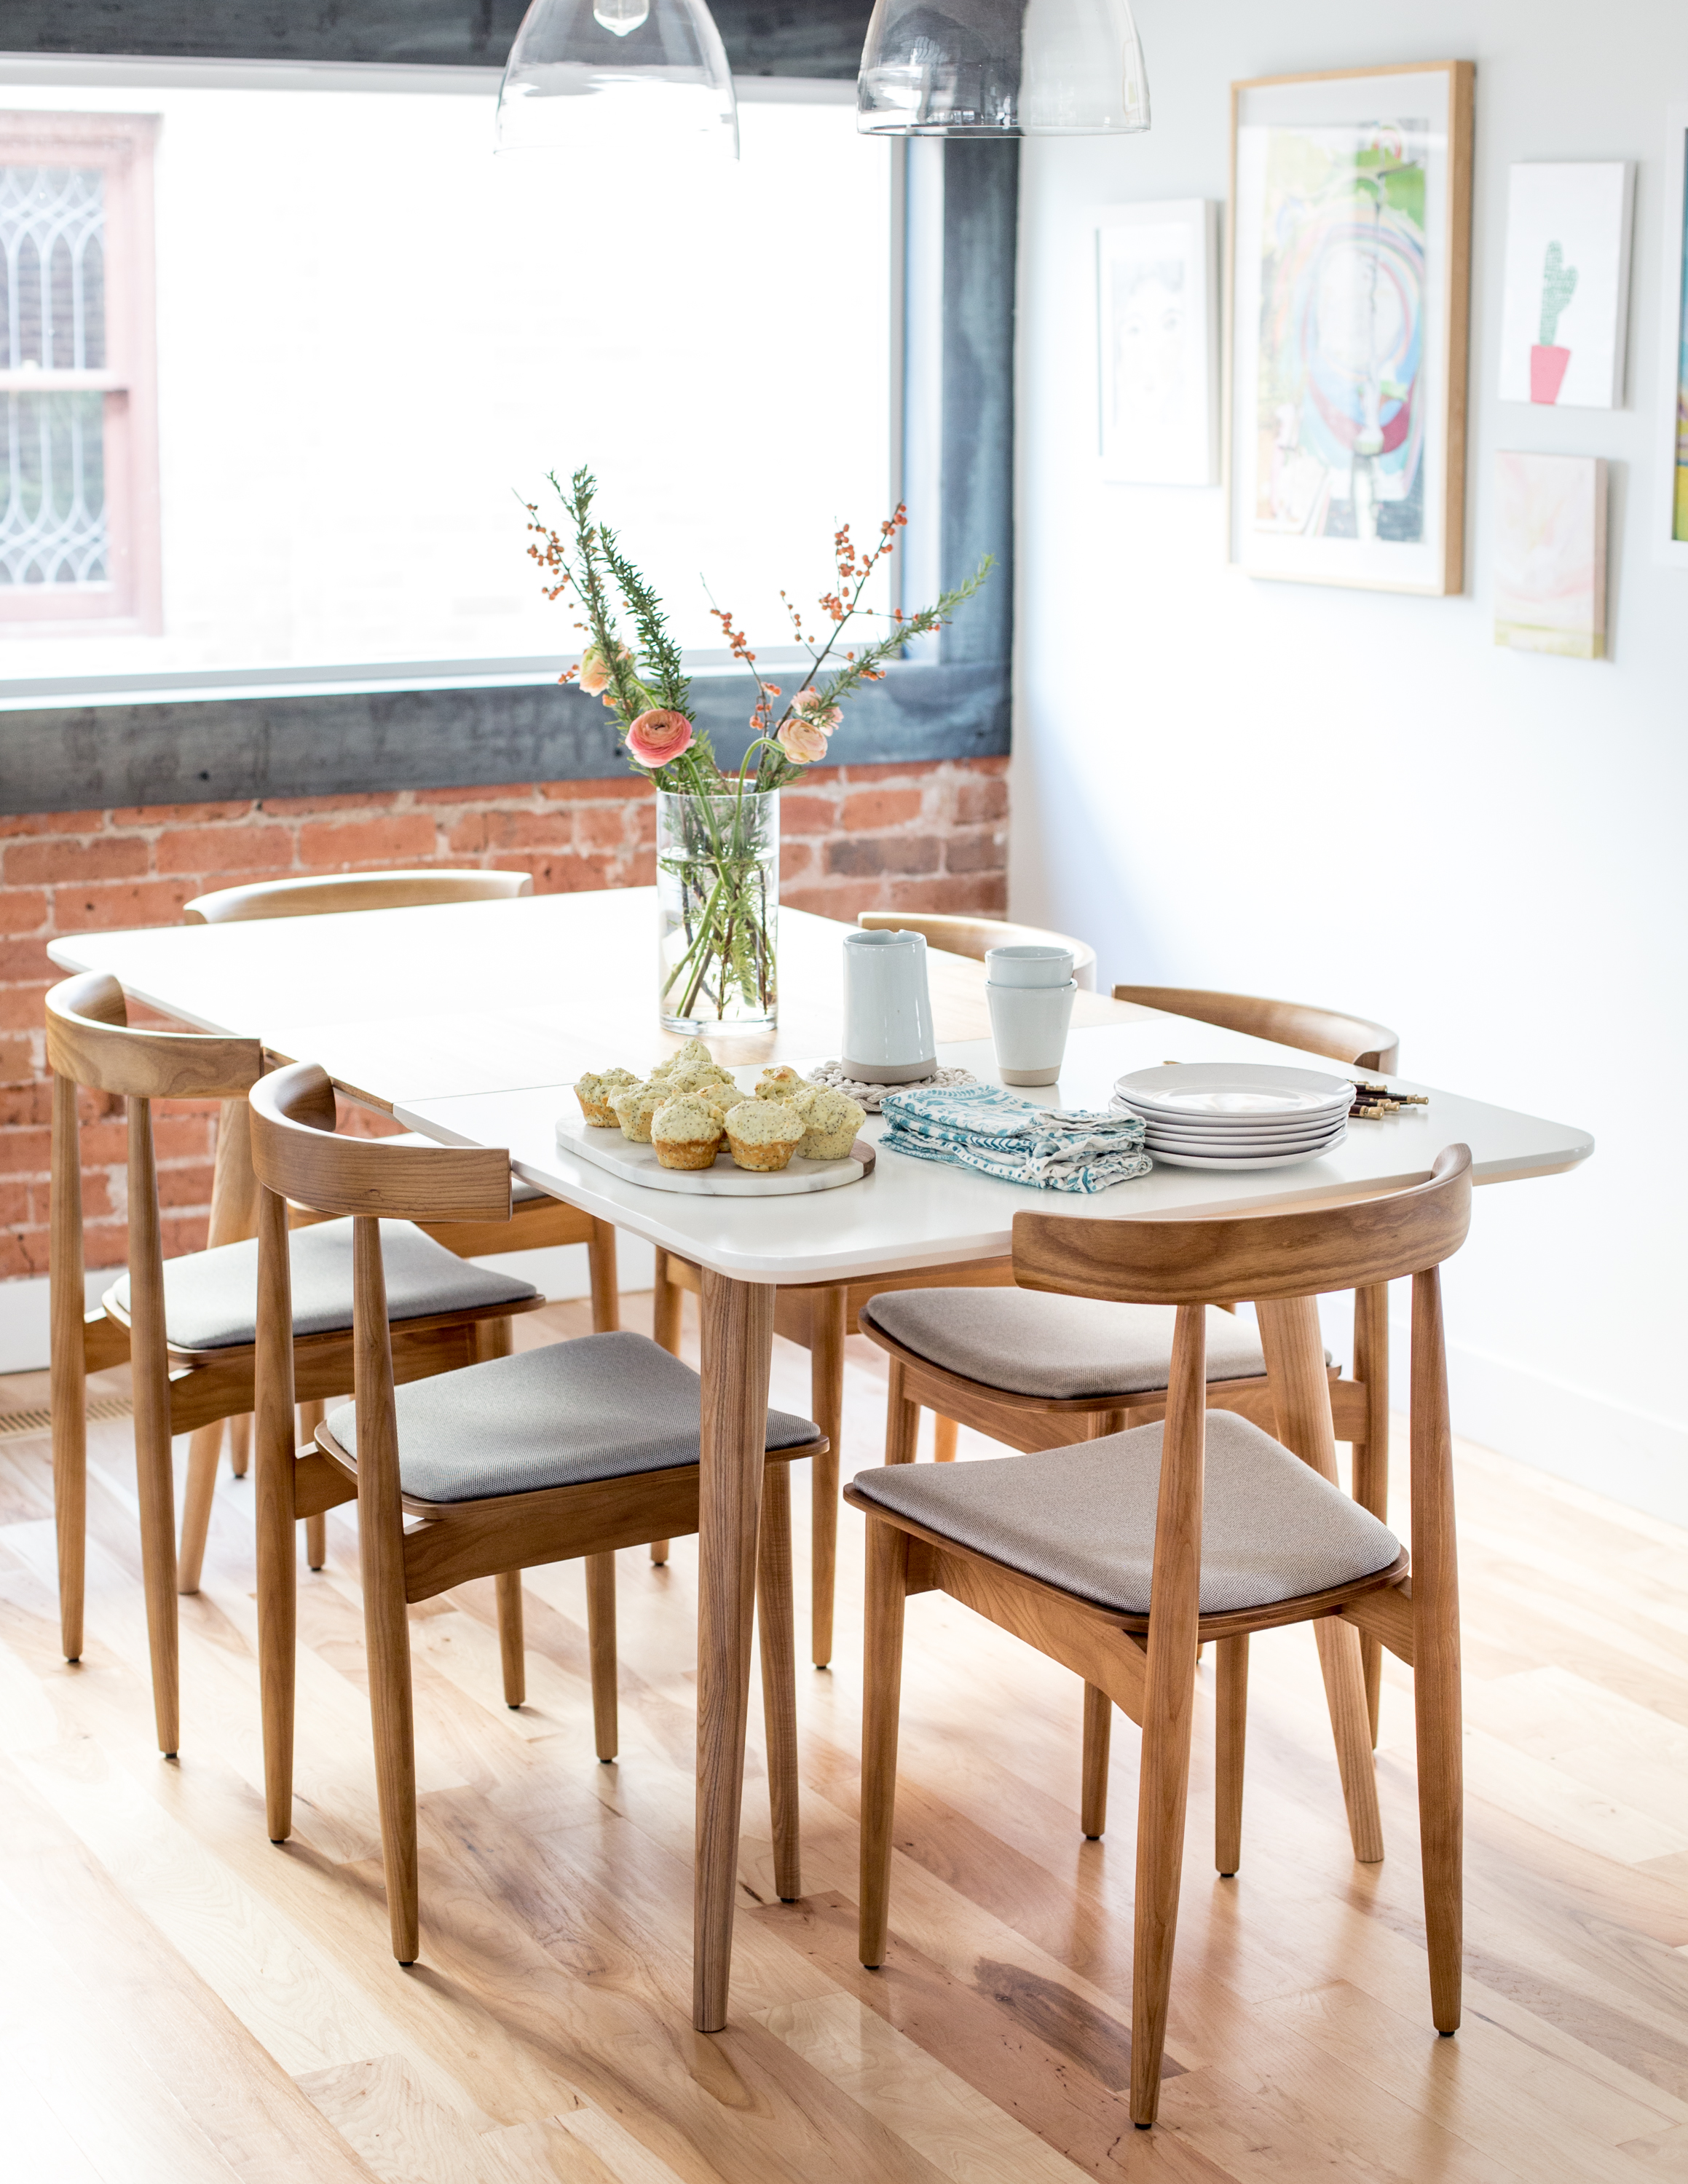 Mid Century Modern Dining Table And Chairs Have Entered Our Space! We Moved  Into This House On Elm Street Two Years Ago, And A New Table Has Been A ...